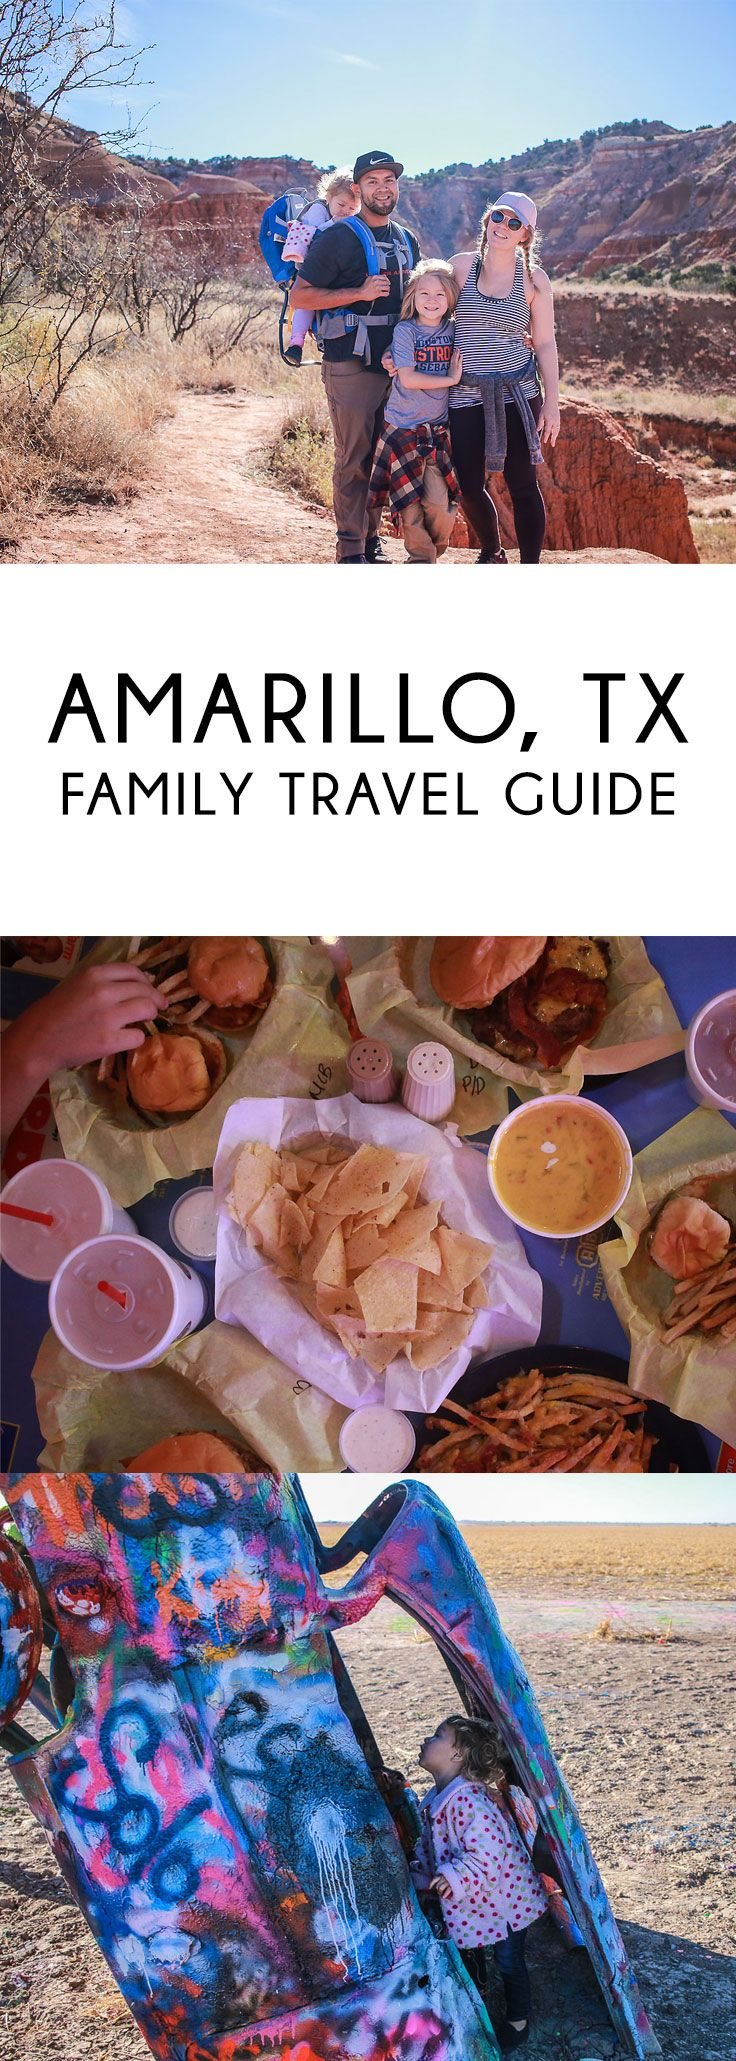 Family friendly guide to Amarillo, TX with places to eat, things to see & the best hikes. Hiking Palo Duro Canyon with kids & toddlers is a breeze. Amarillo, TX food was much more than expected. Things to do & see in Amarillo, TX. Amarillo, TX with kids is a blast & a very family friendly destination